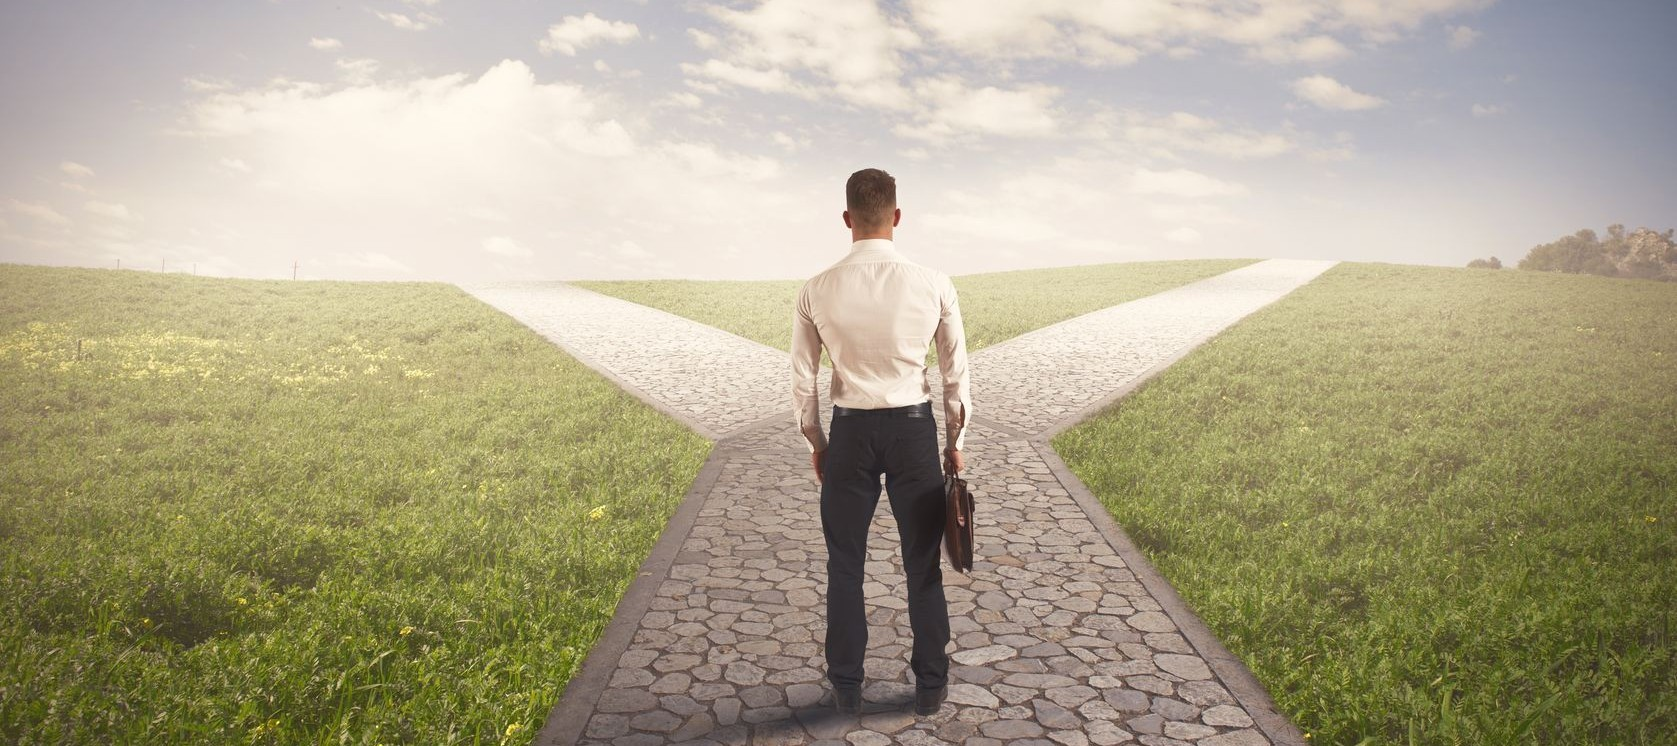 Man in a business suit standing at a literal crossroads